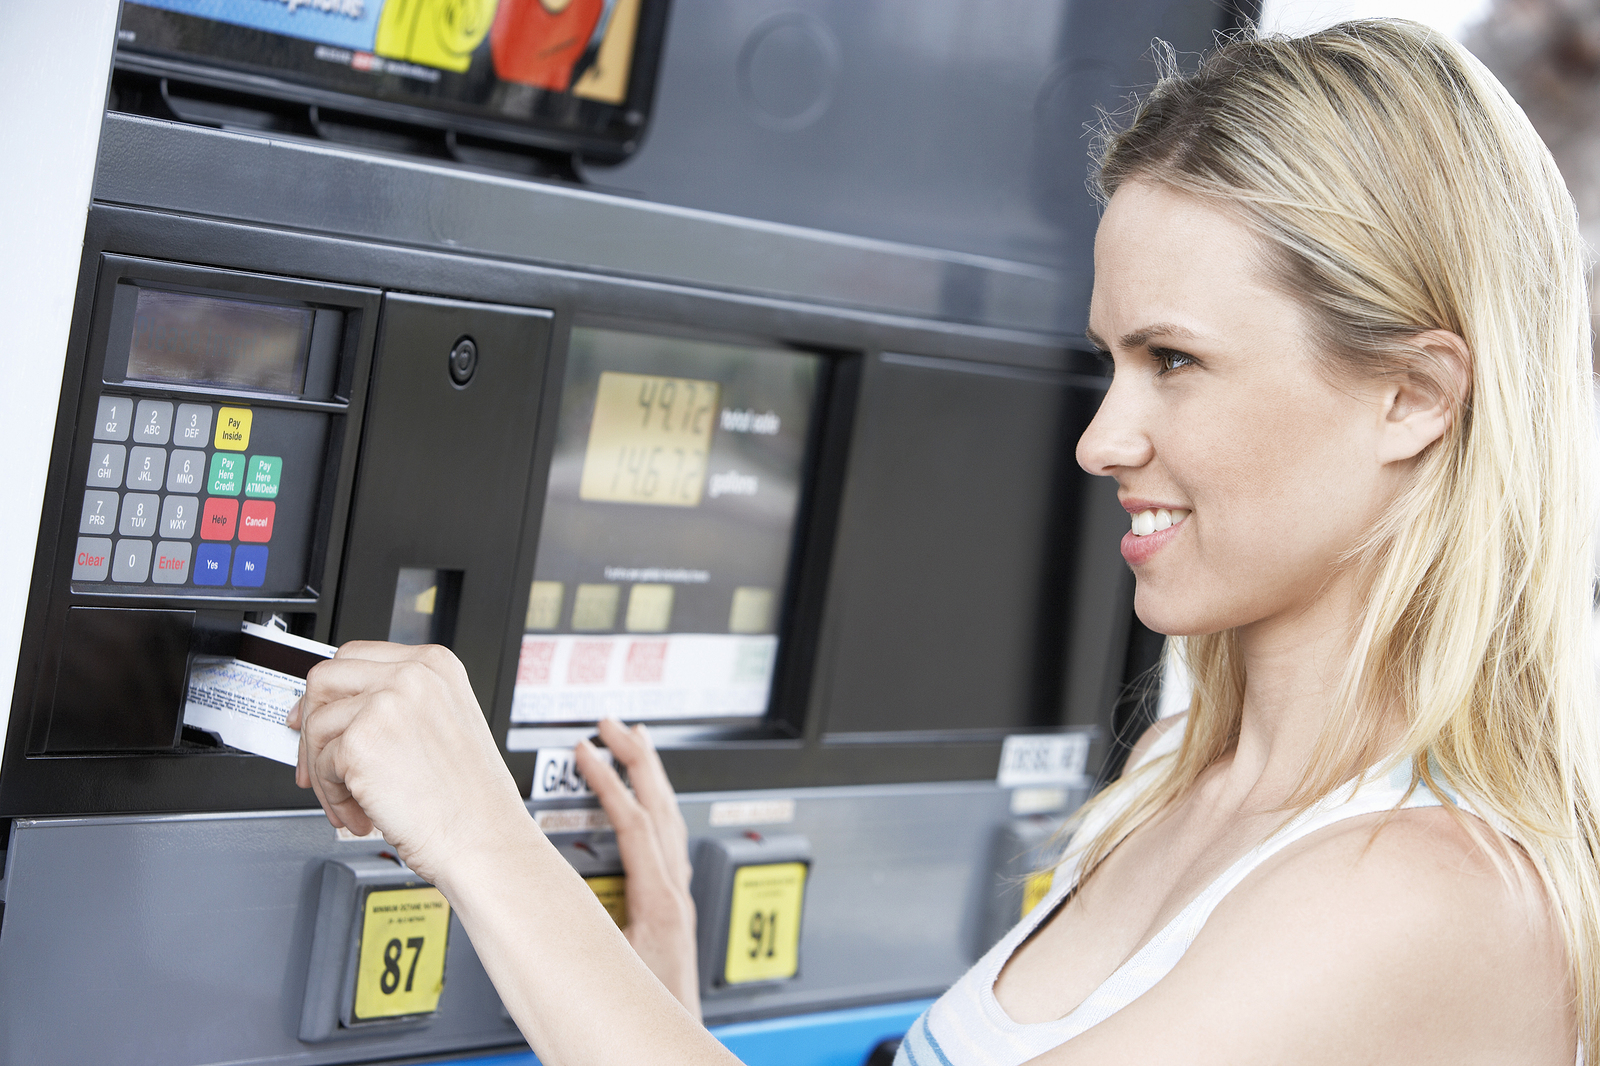 PAY-AT-THE-PUMP PAYMENT PROCESSING